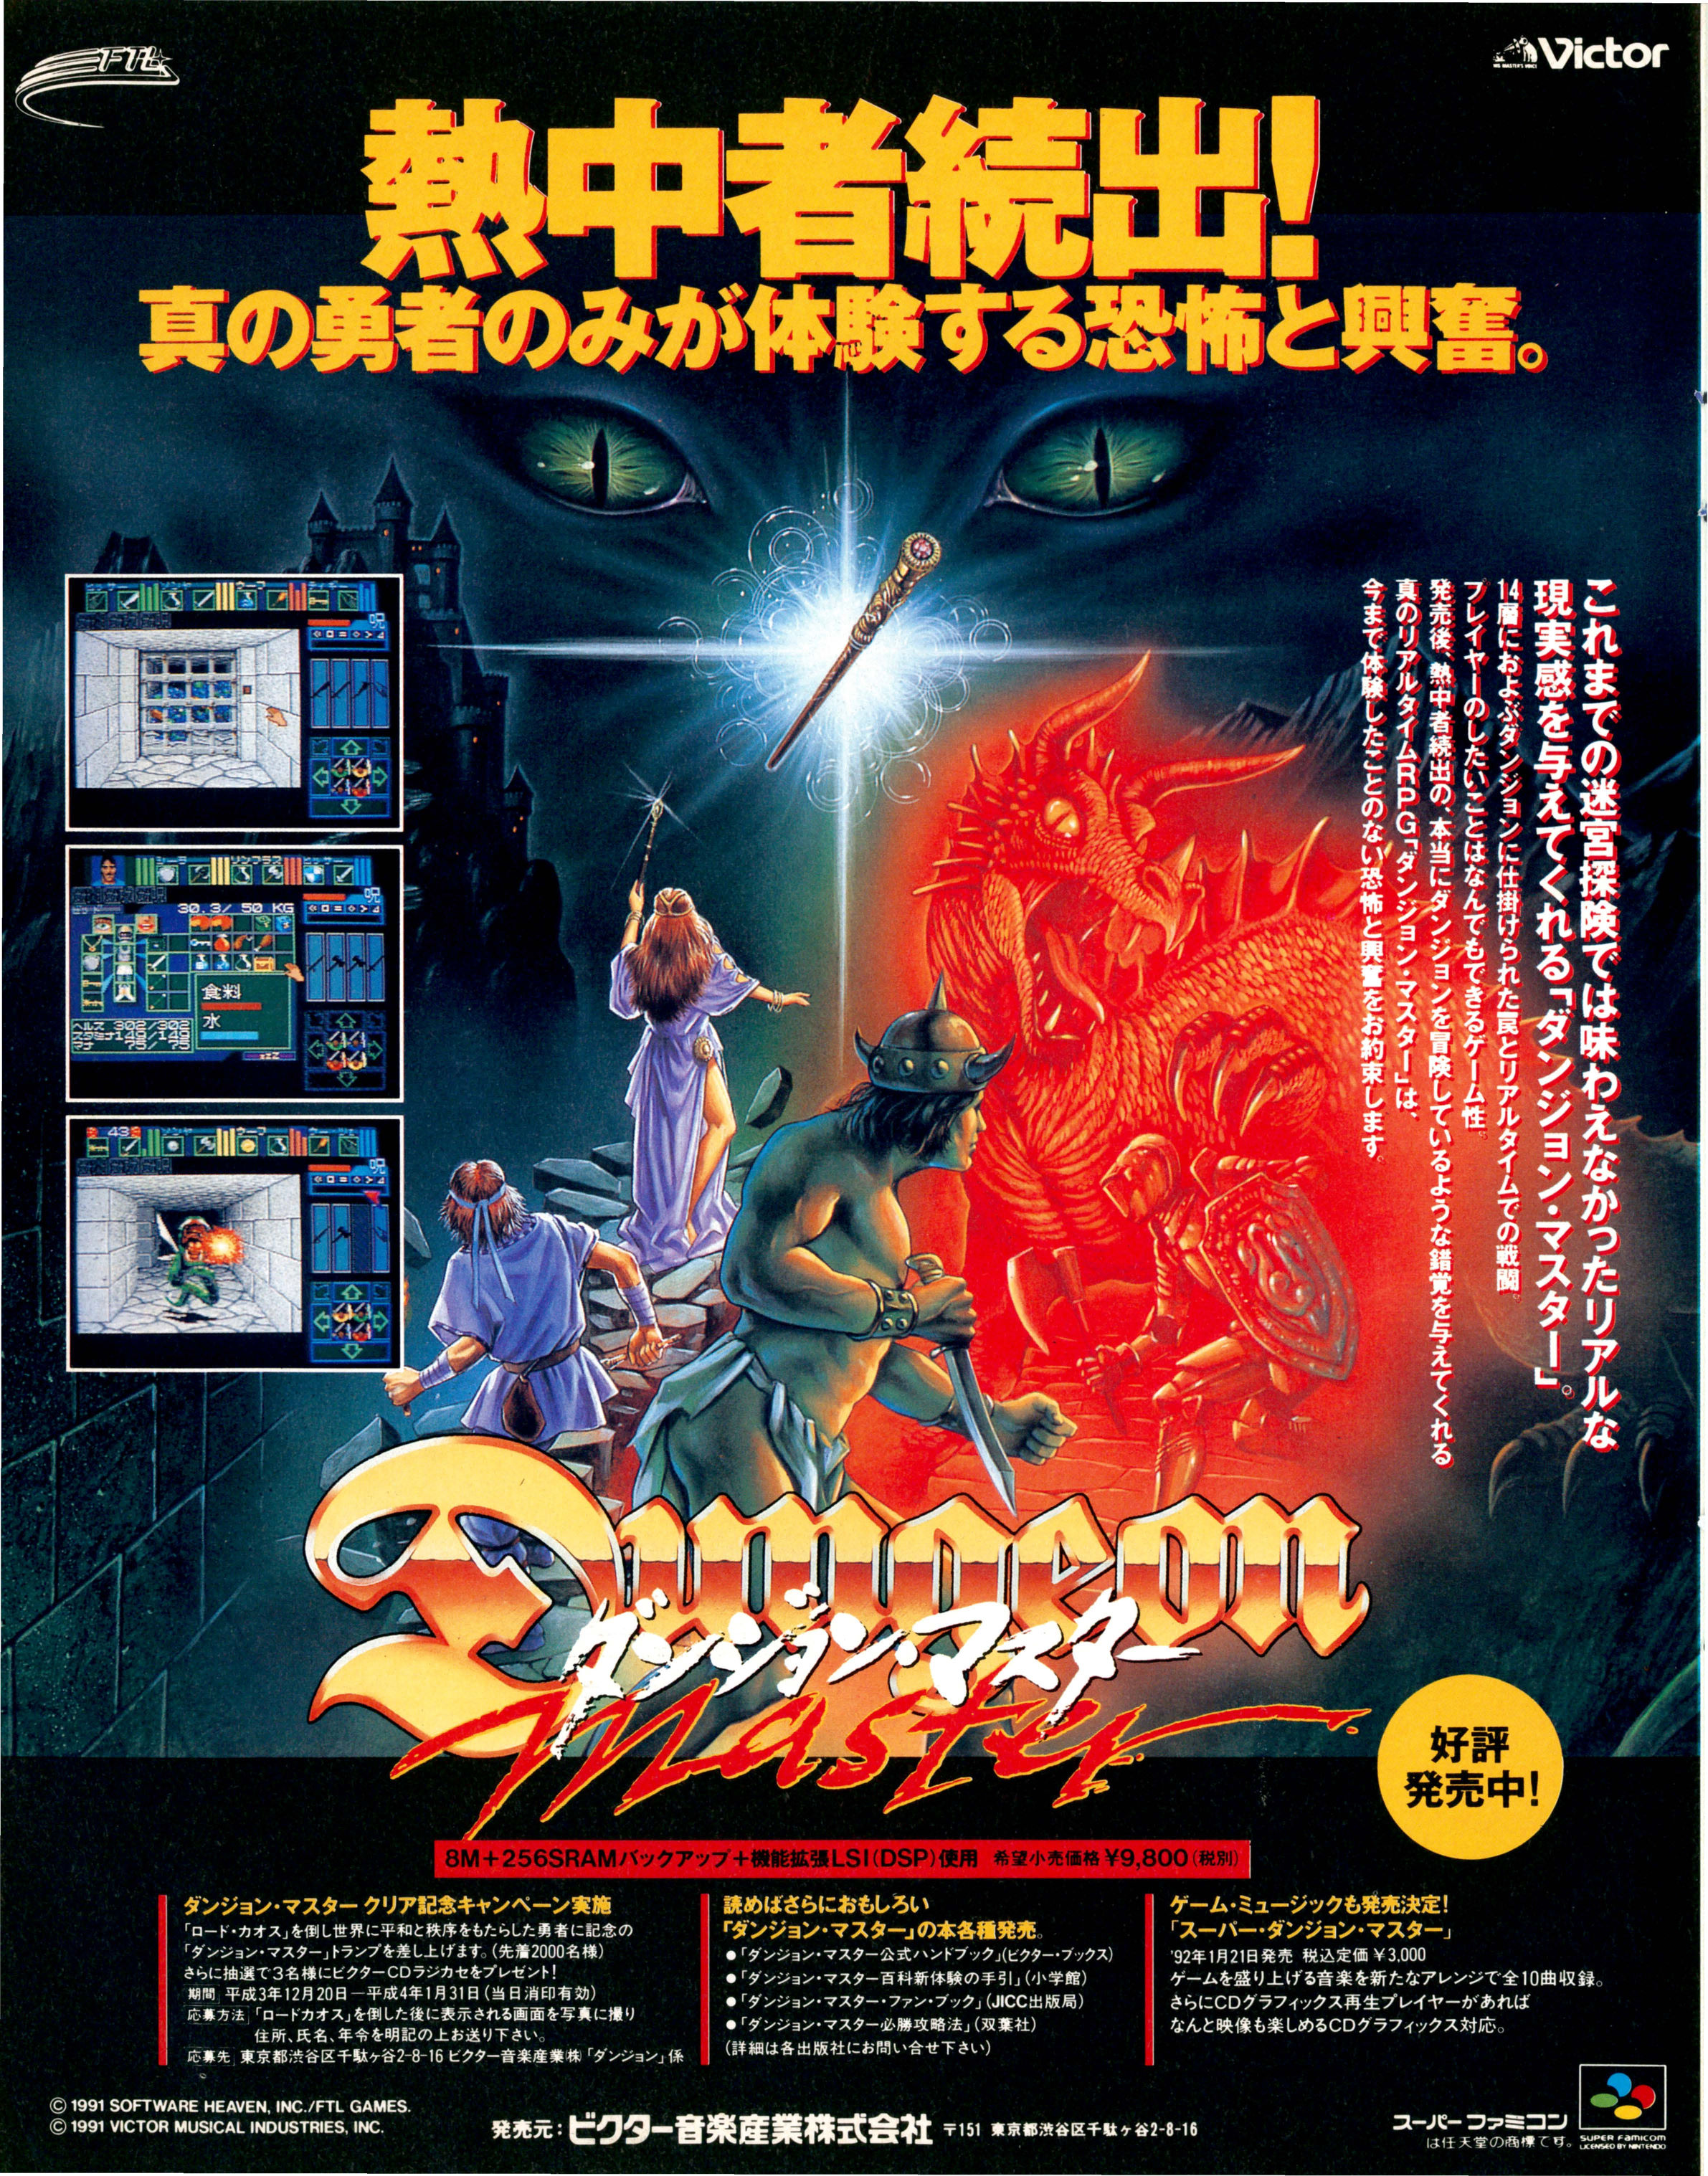 Dungeon Master for Super Famicom Advertisement published in Japanese magazine 'Famitsu', Issue #160 10 January 1992, Page 88